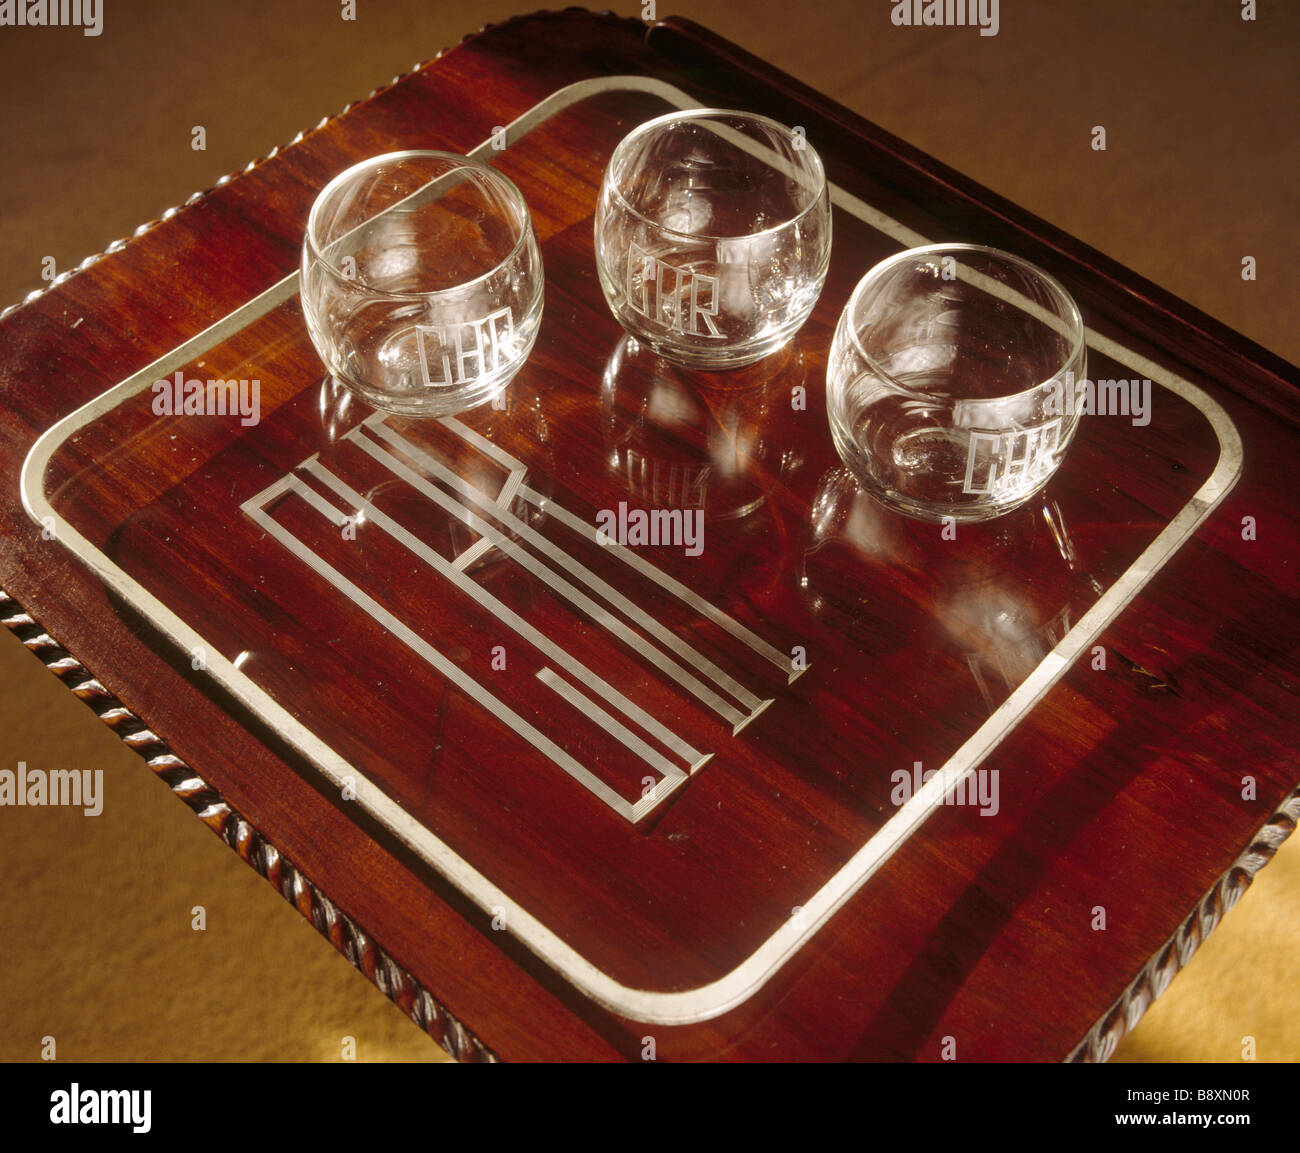 Detail of the Charles Henry Robinson monogrammed glasses on a tray in the Library at Ightham Mote Stock Photo